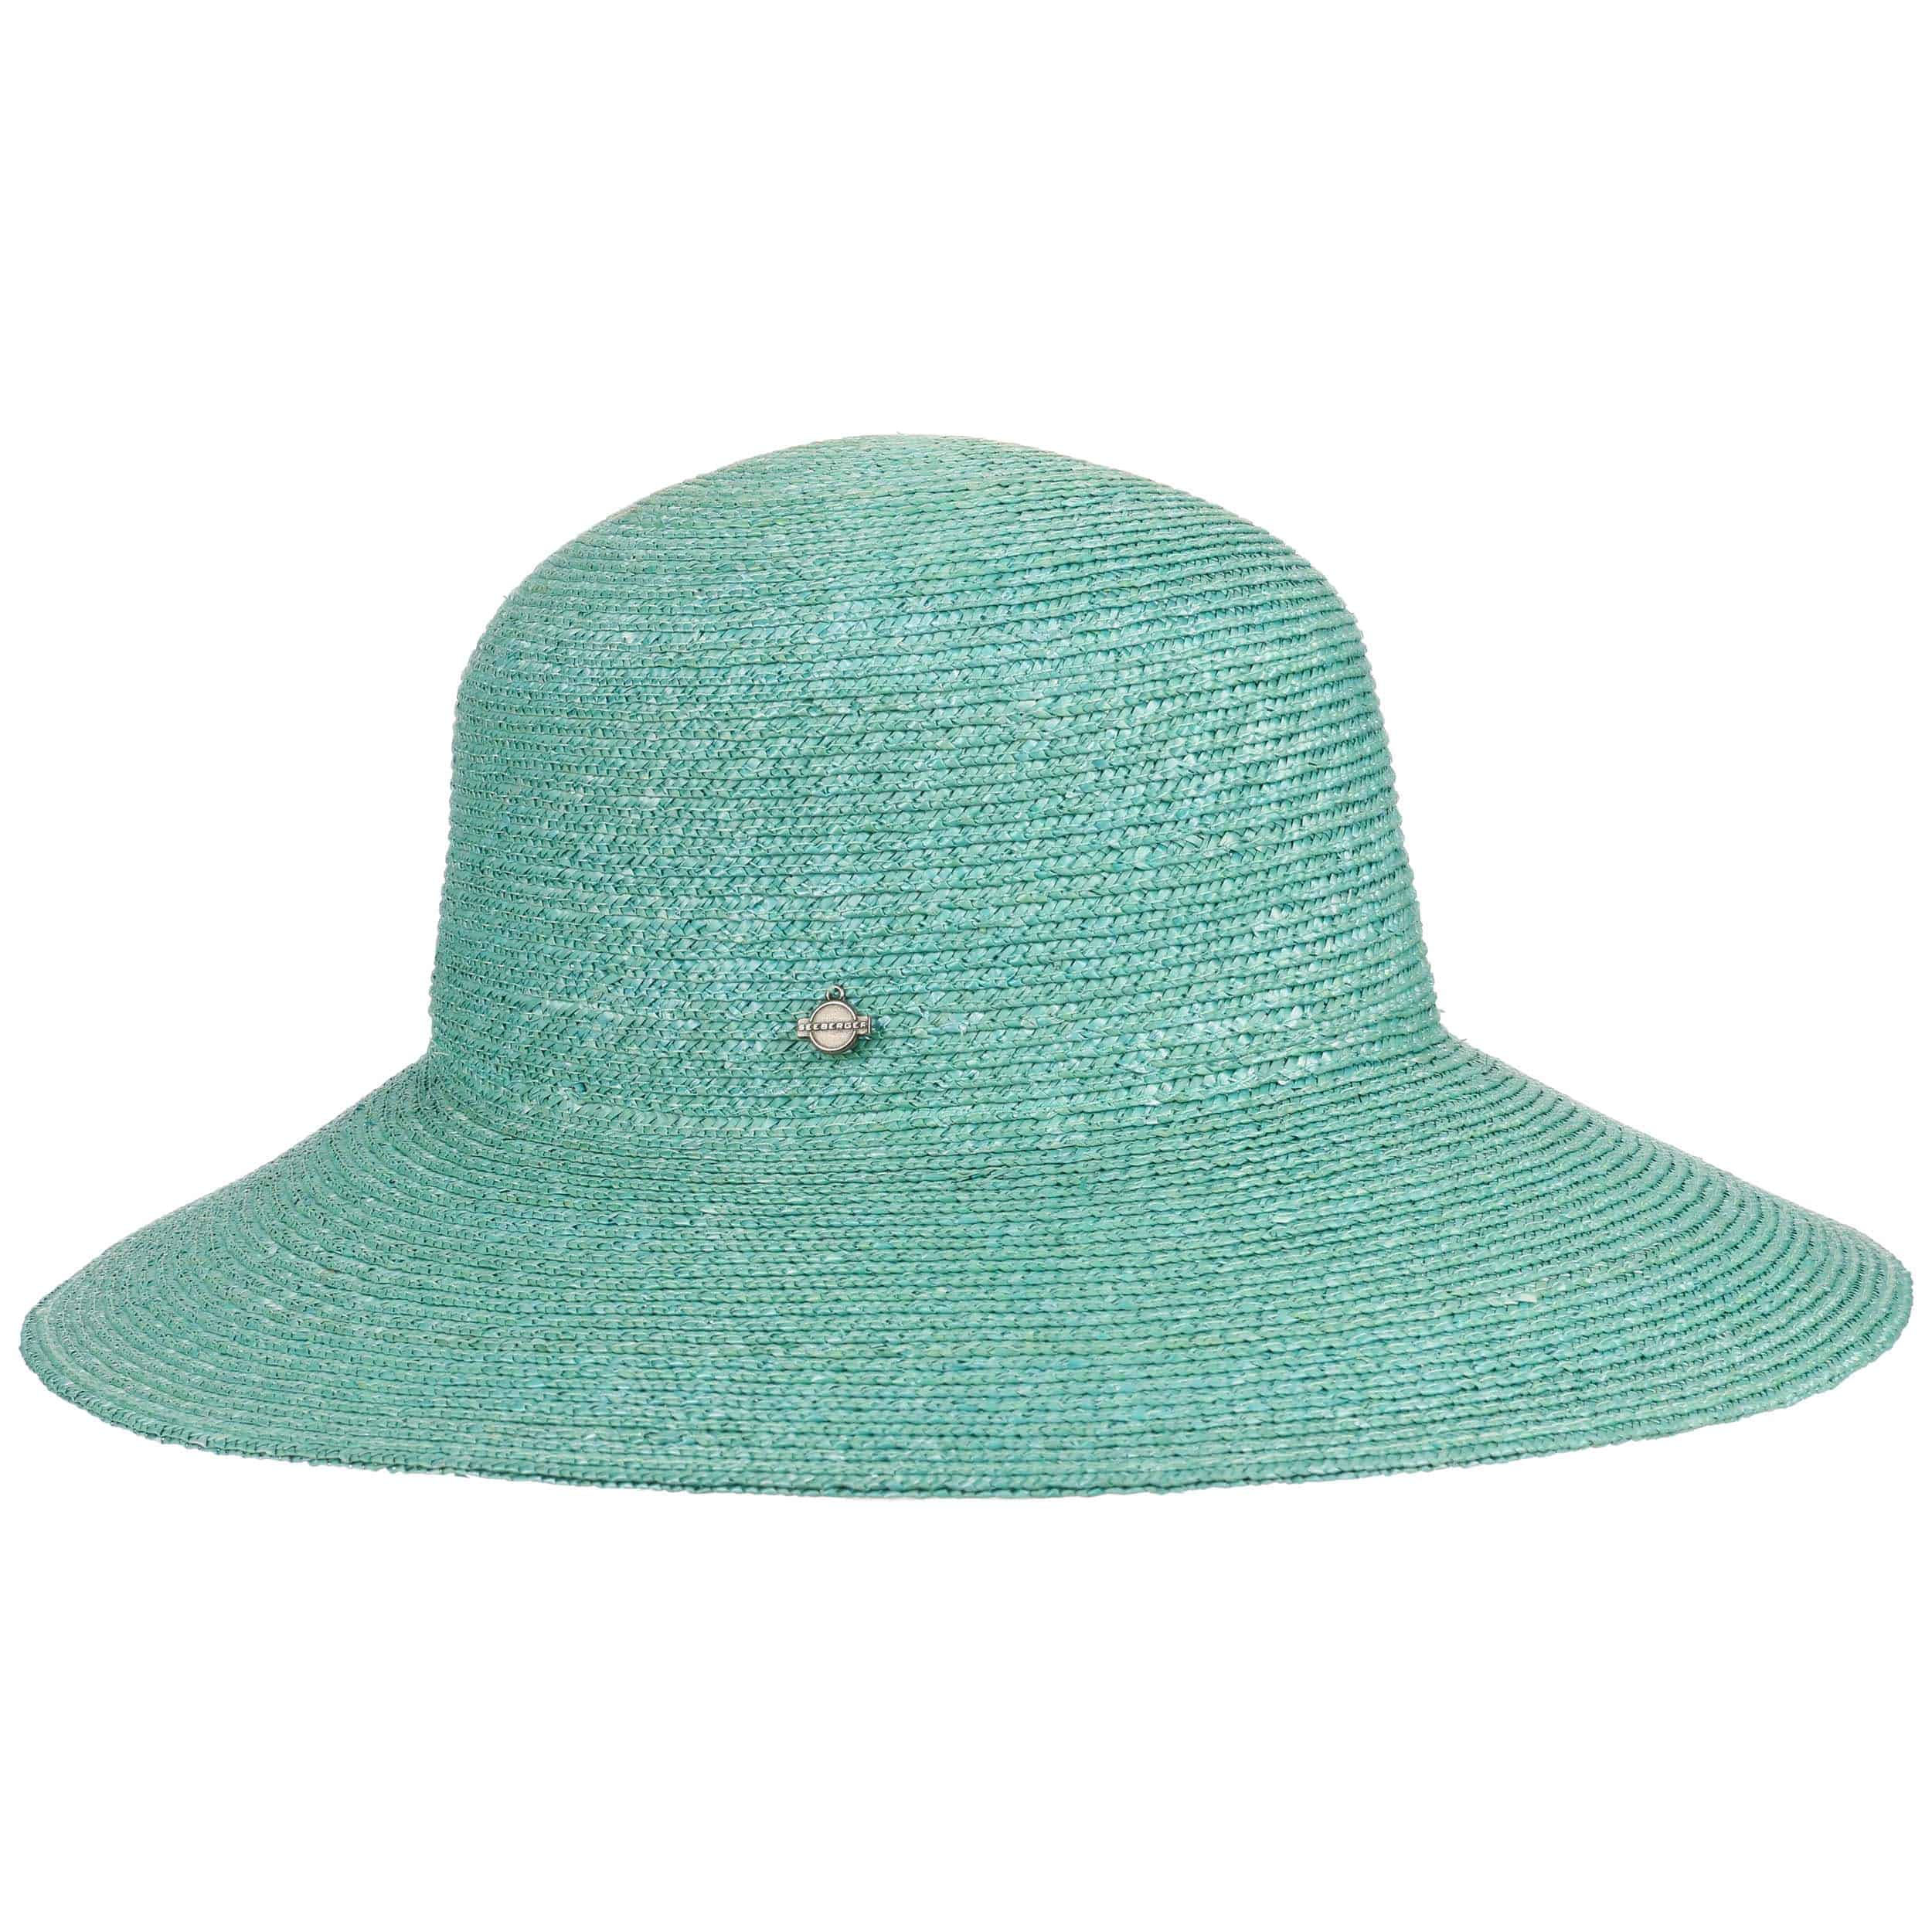 049074ca46b ... Lina Floppy Hat UV Protection by Seeberger - mint green 4 ...